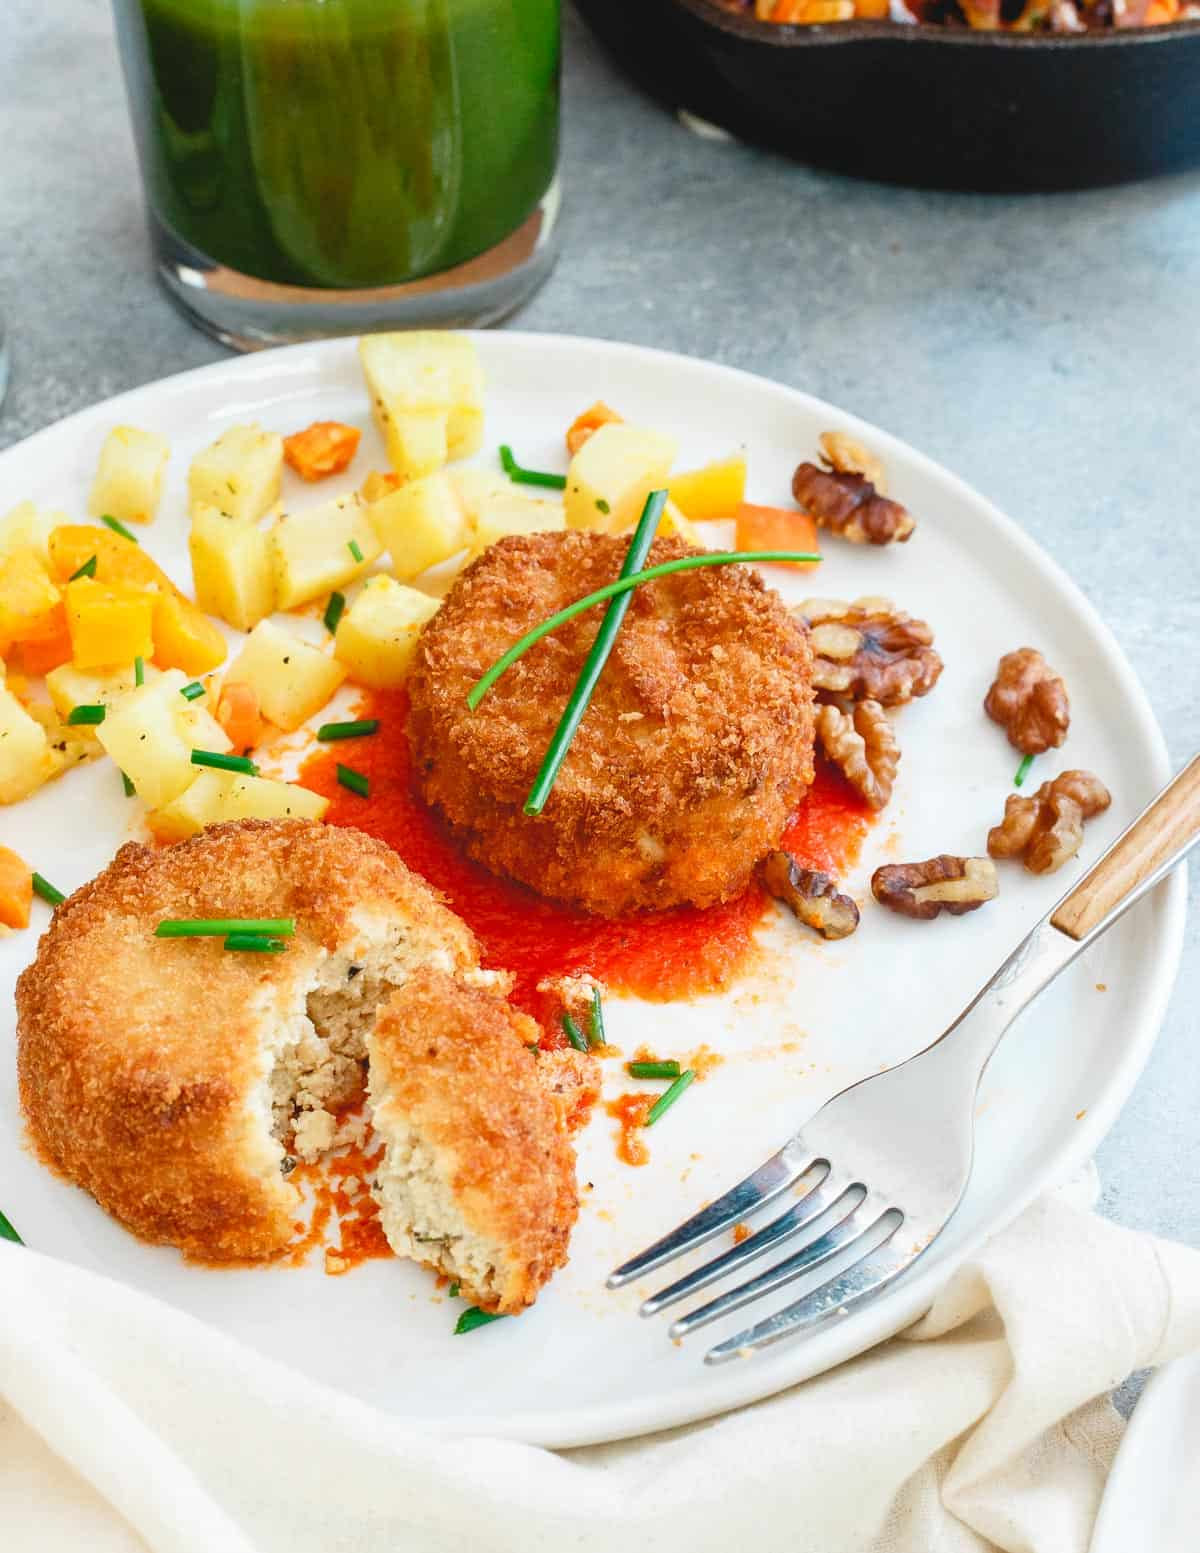 Veestro's savory croquettes are the perfect balance of crispy on the outside and a moist tofu, potato, squash inside. A fun plant based alternative to your typical breakfast.